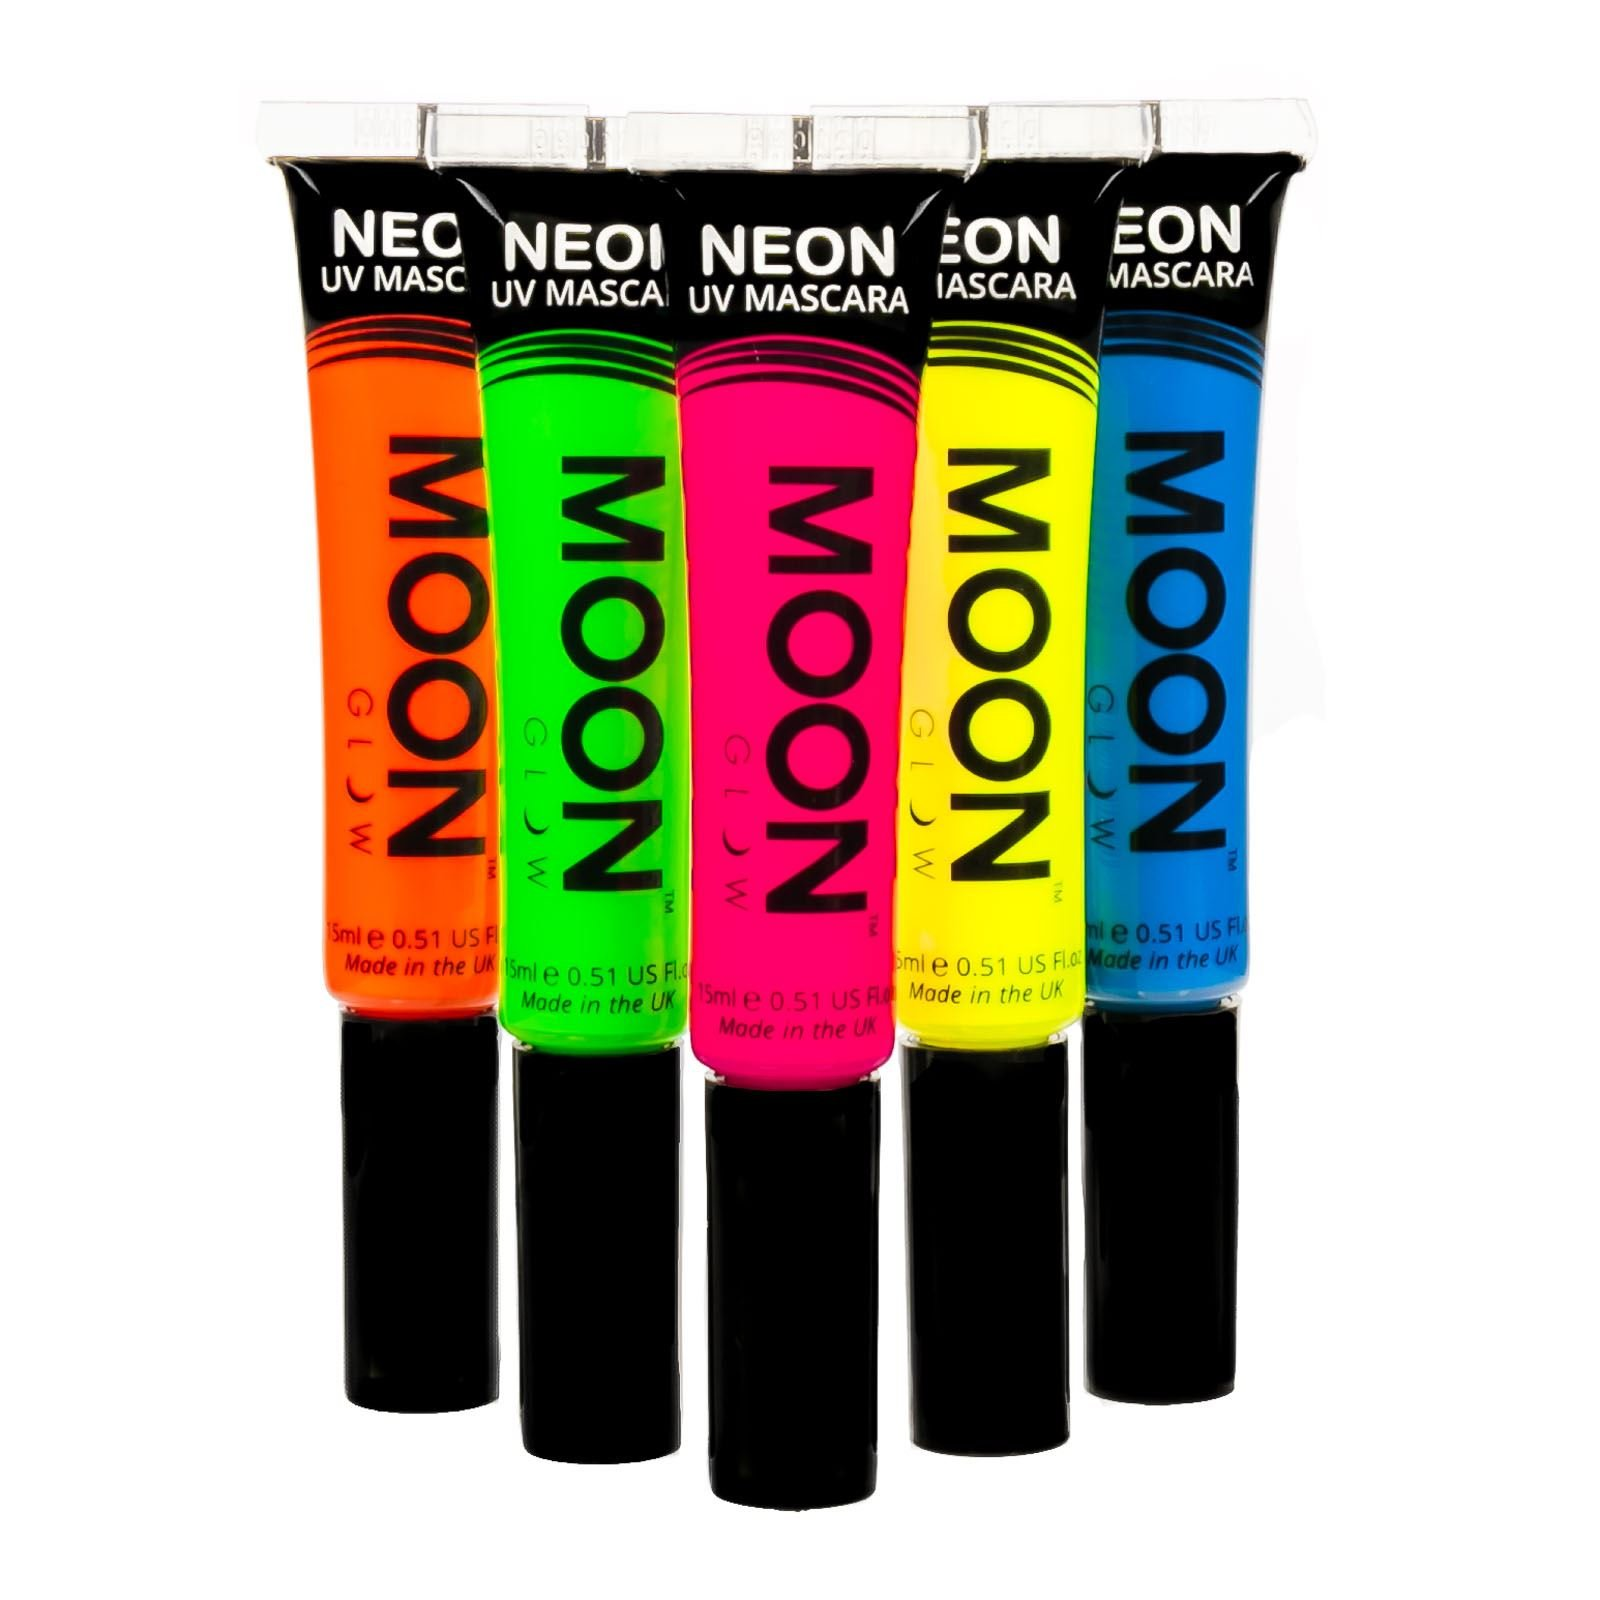 Moon Glow - Blacklight Neon Mascara 0.51oz Set of 5 colors - Glows brightly under Blacklights / UV Lighting! by Moon Glow